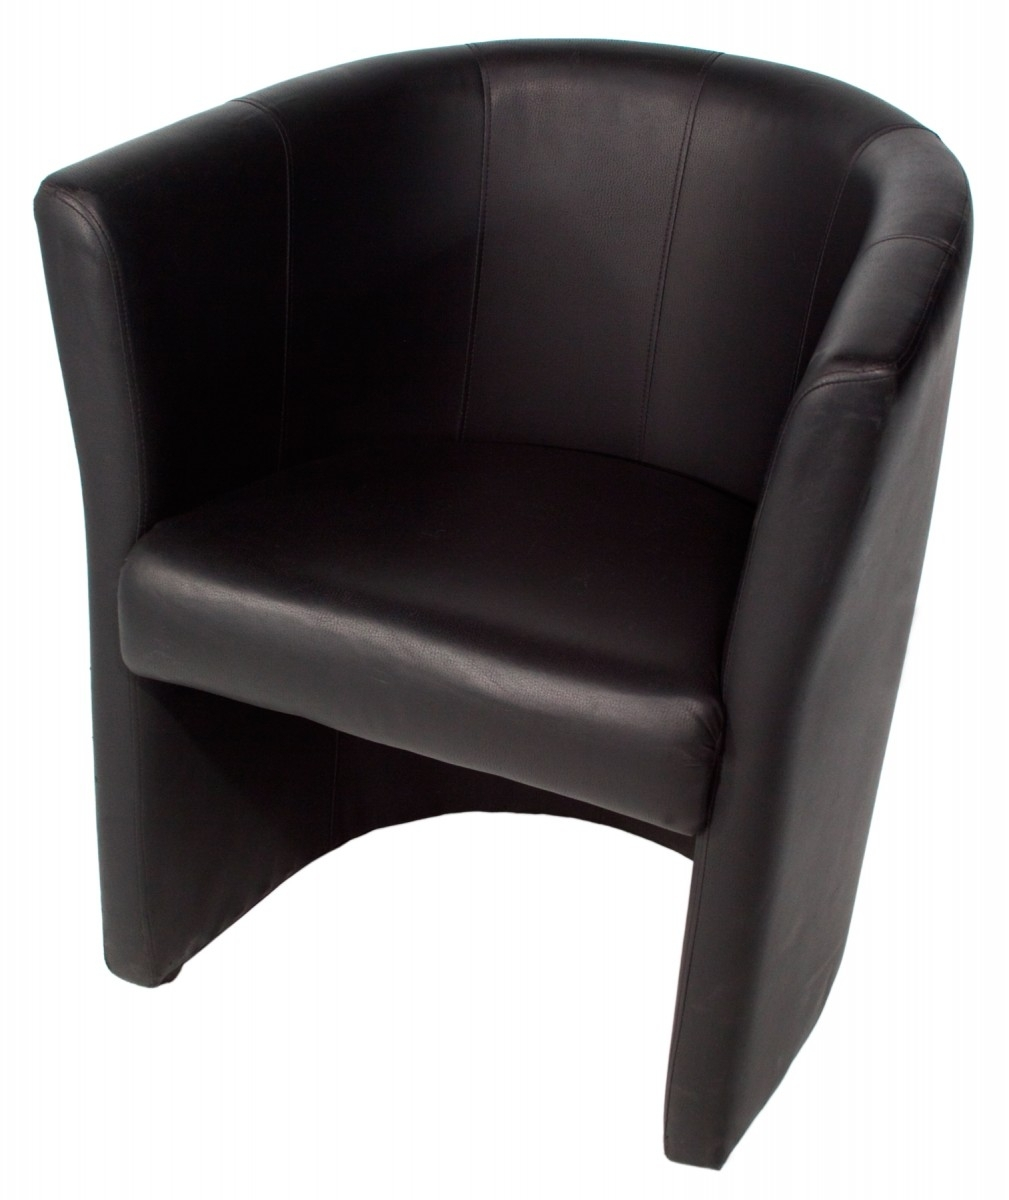 location de fauteuil club noir sur location de mobilier et mat riels pour. Black Bedroom Furniture Sets. Home Design Ideas